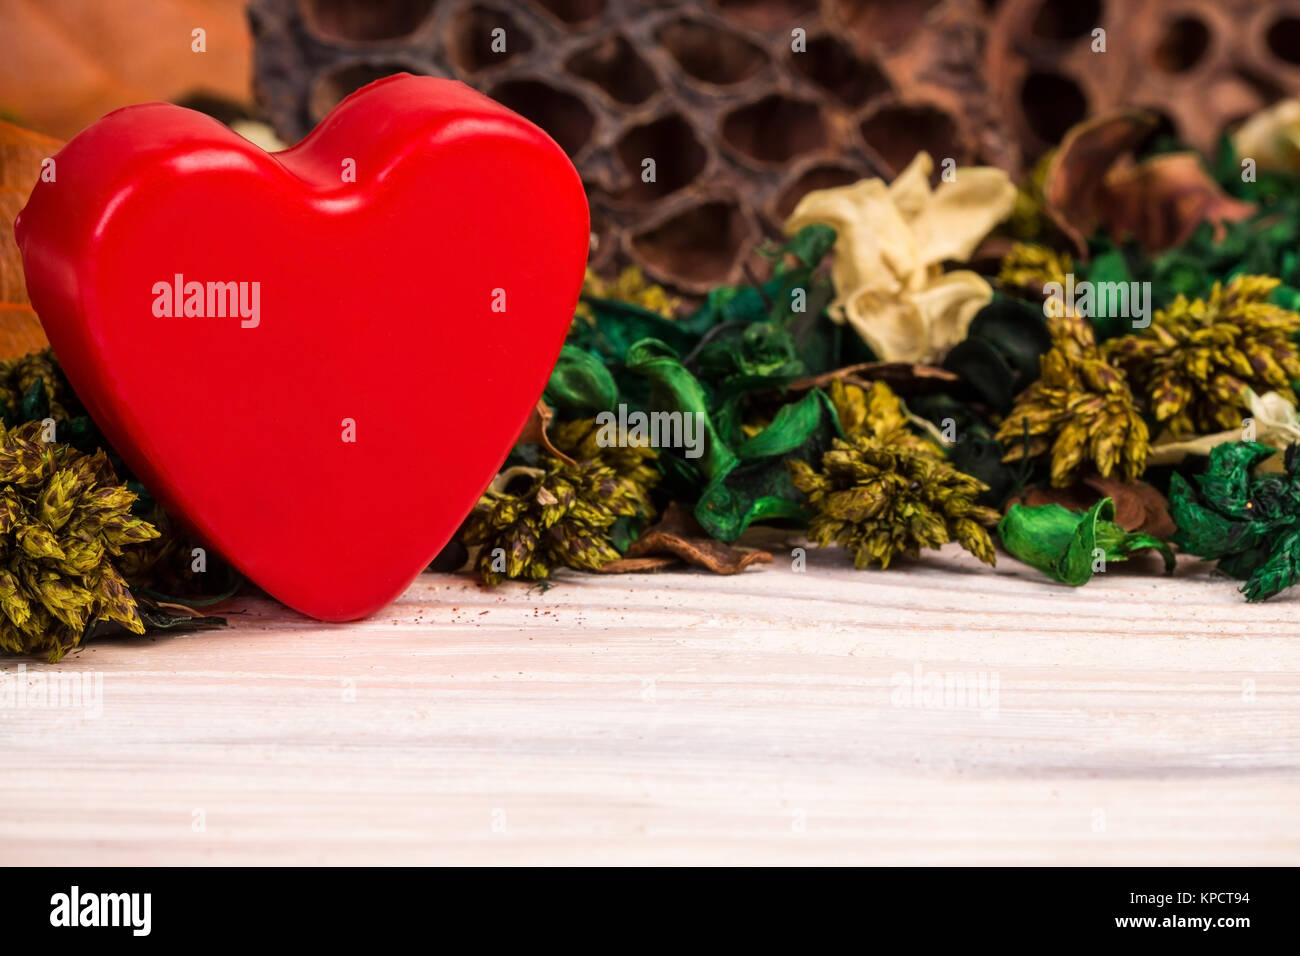 Cool background with dried plants flowers and red heart - Stock Image